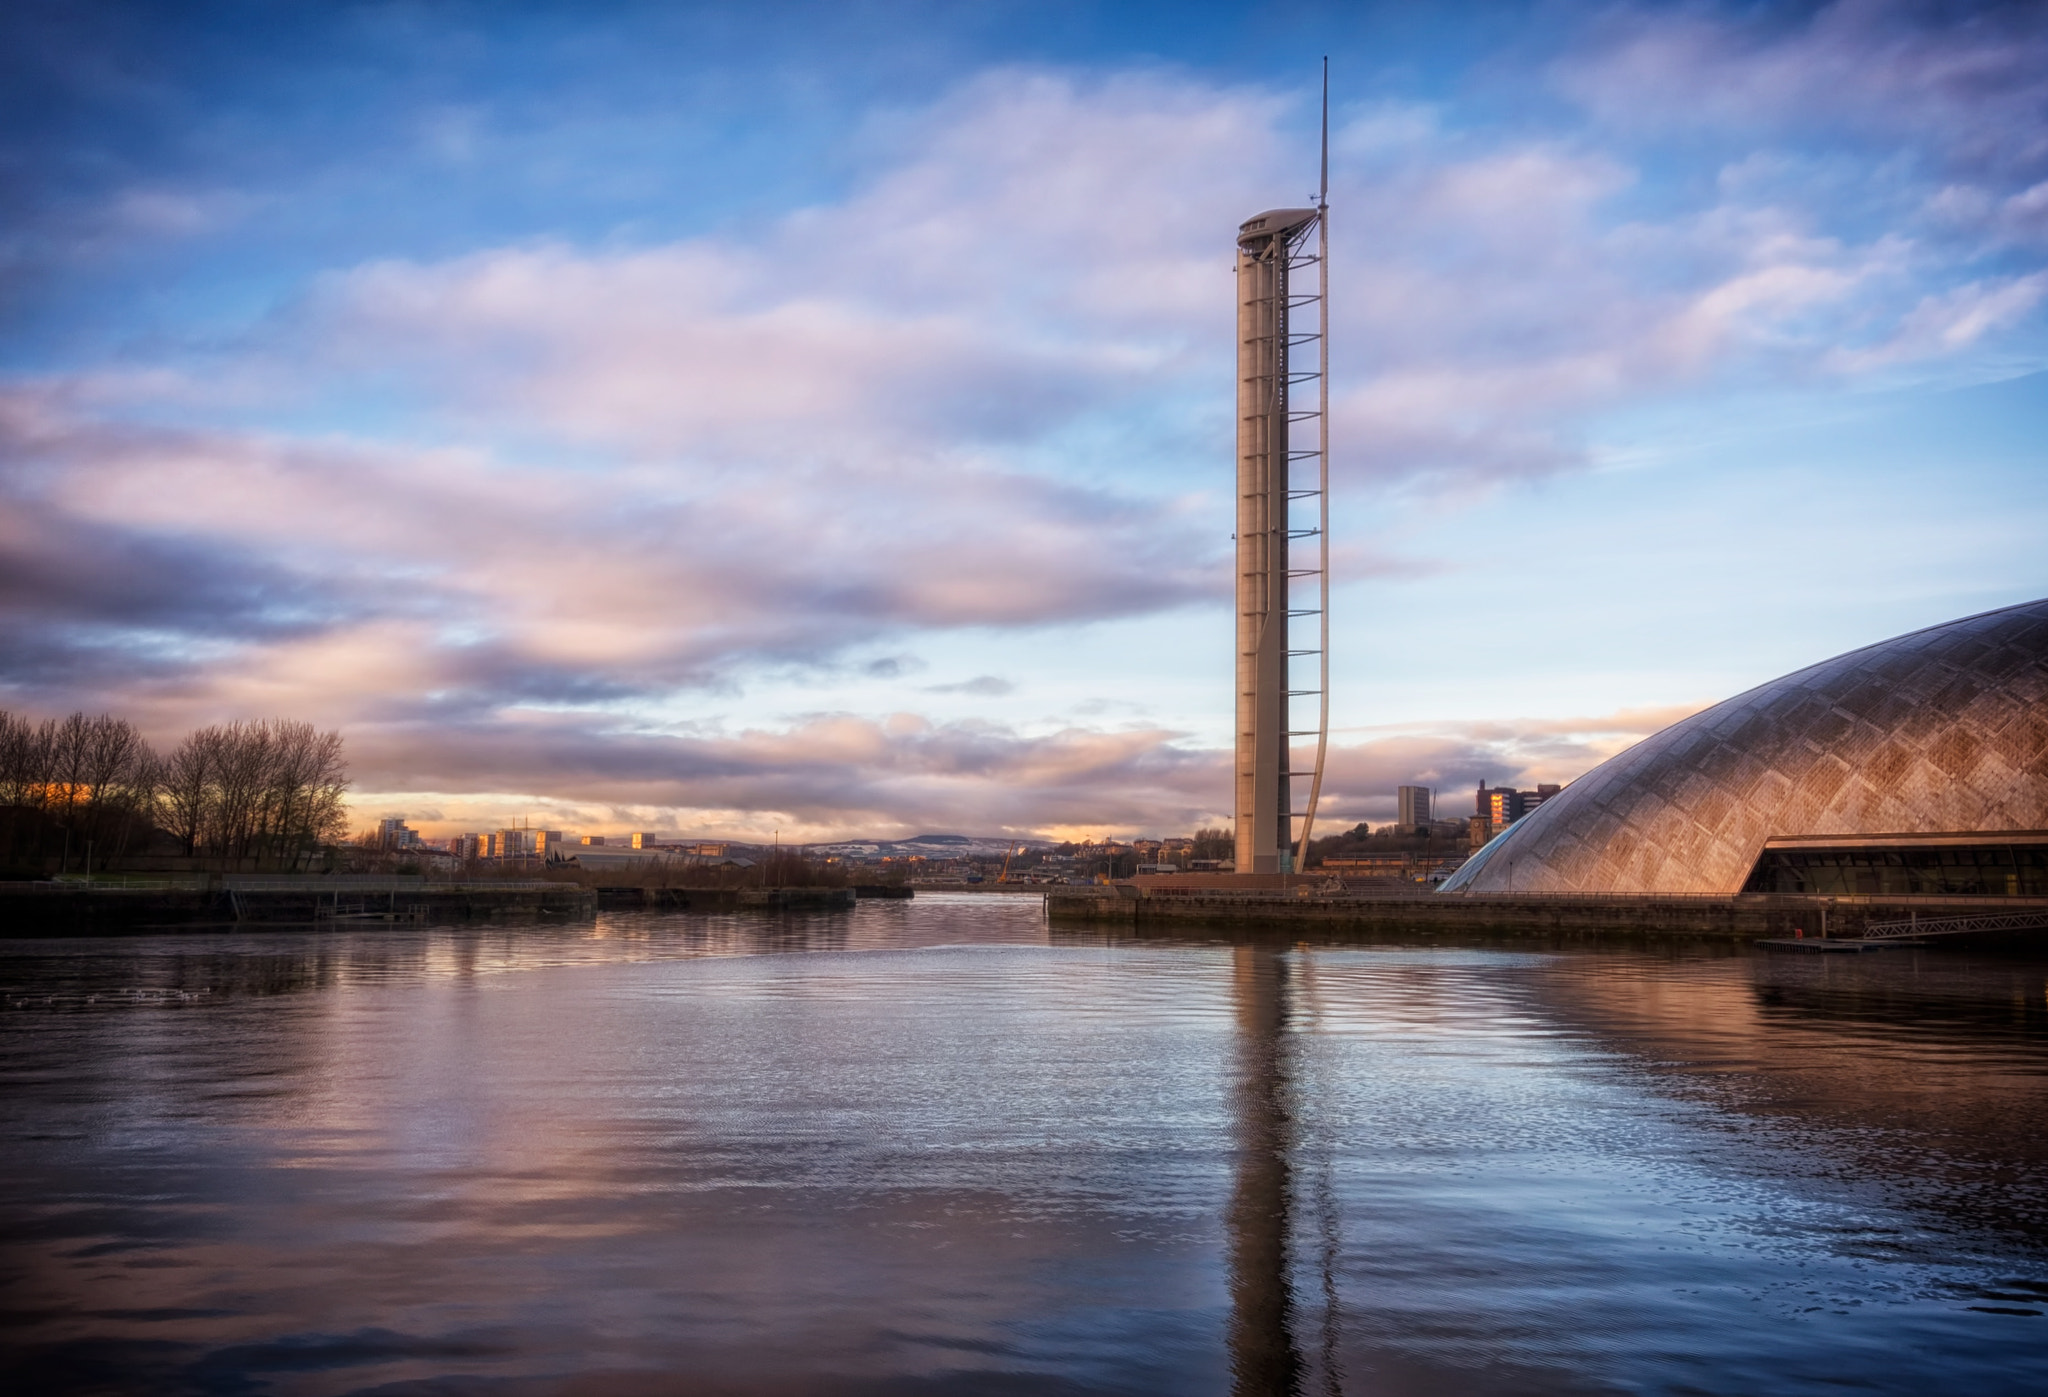 Photograph Glasgow Tower & River Clyde by David Early on 500px